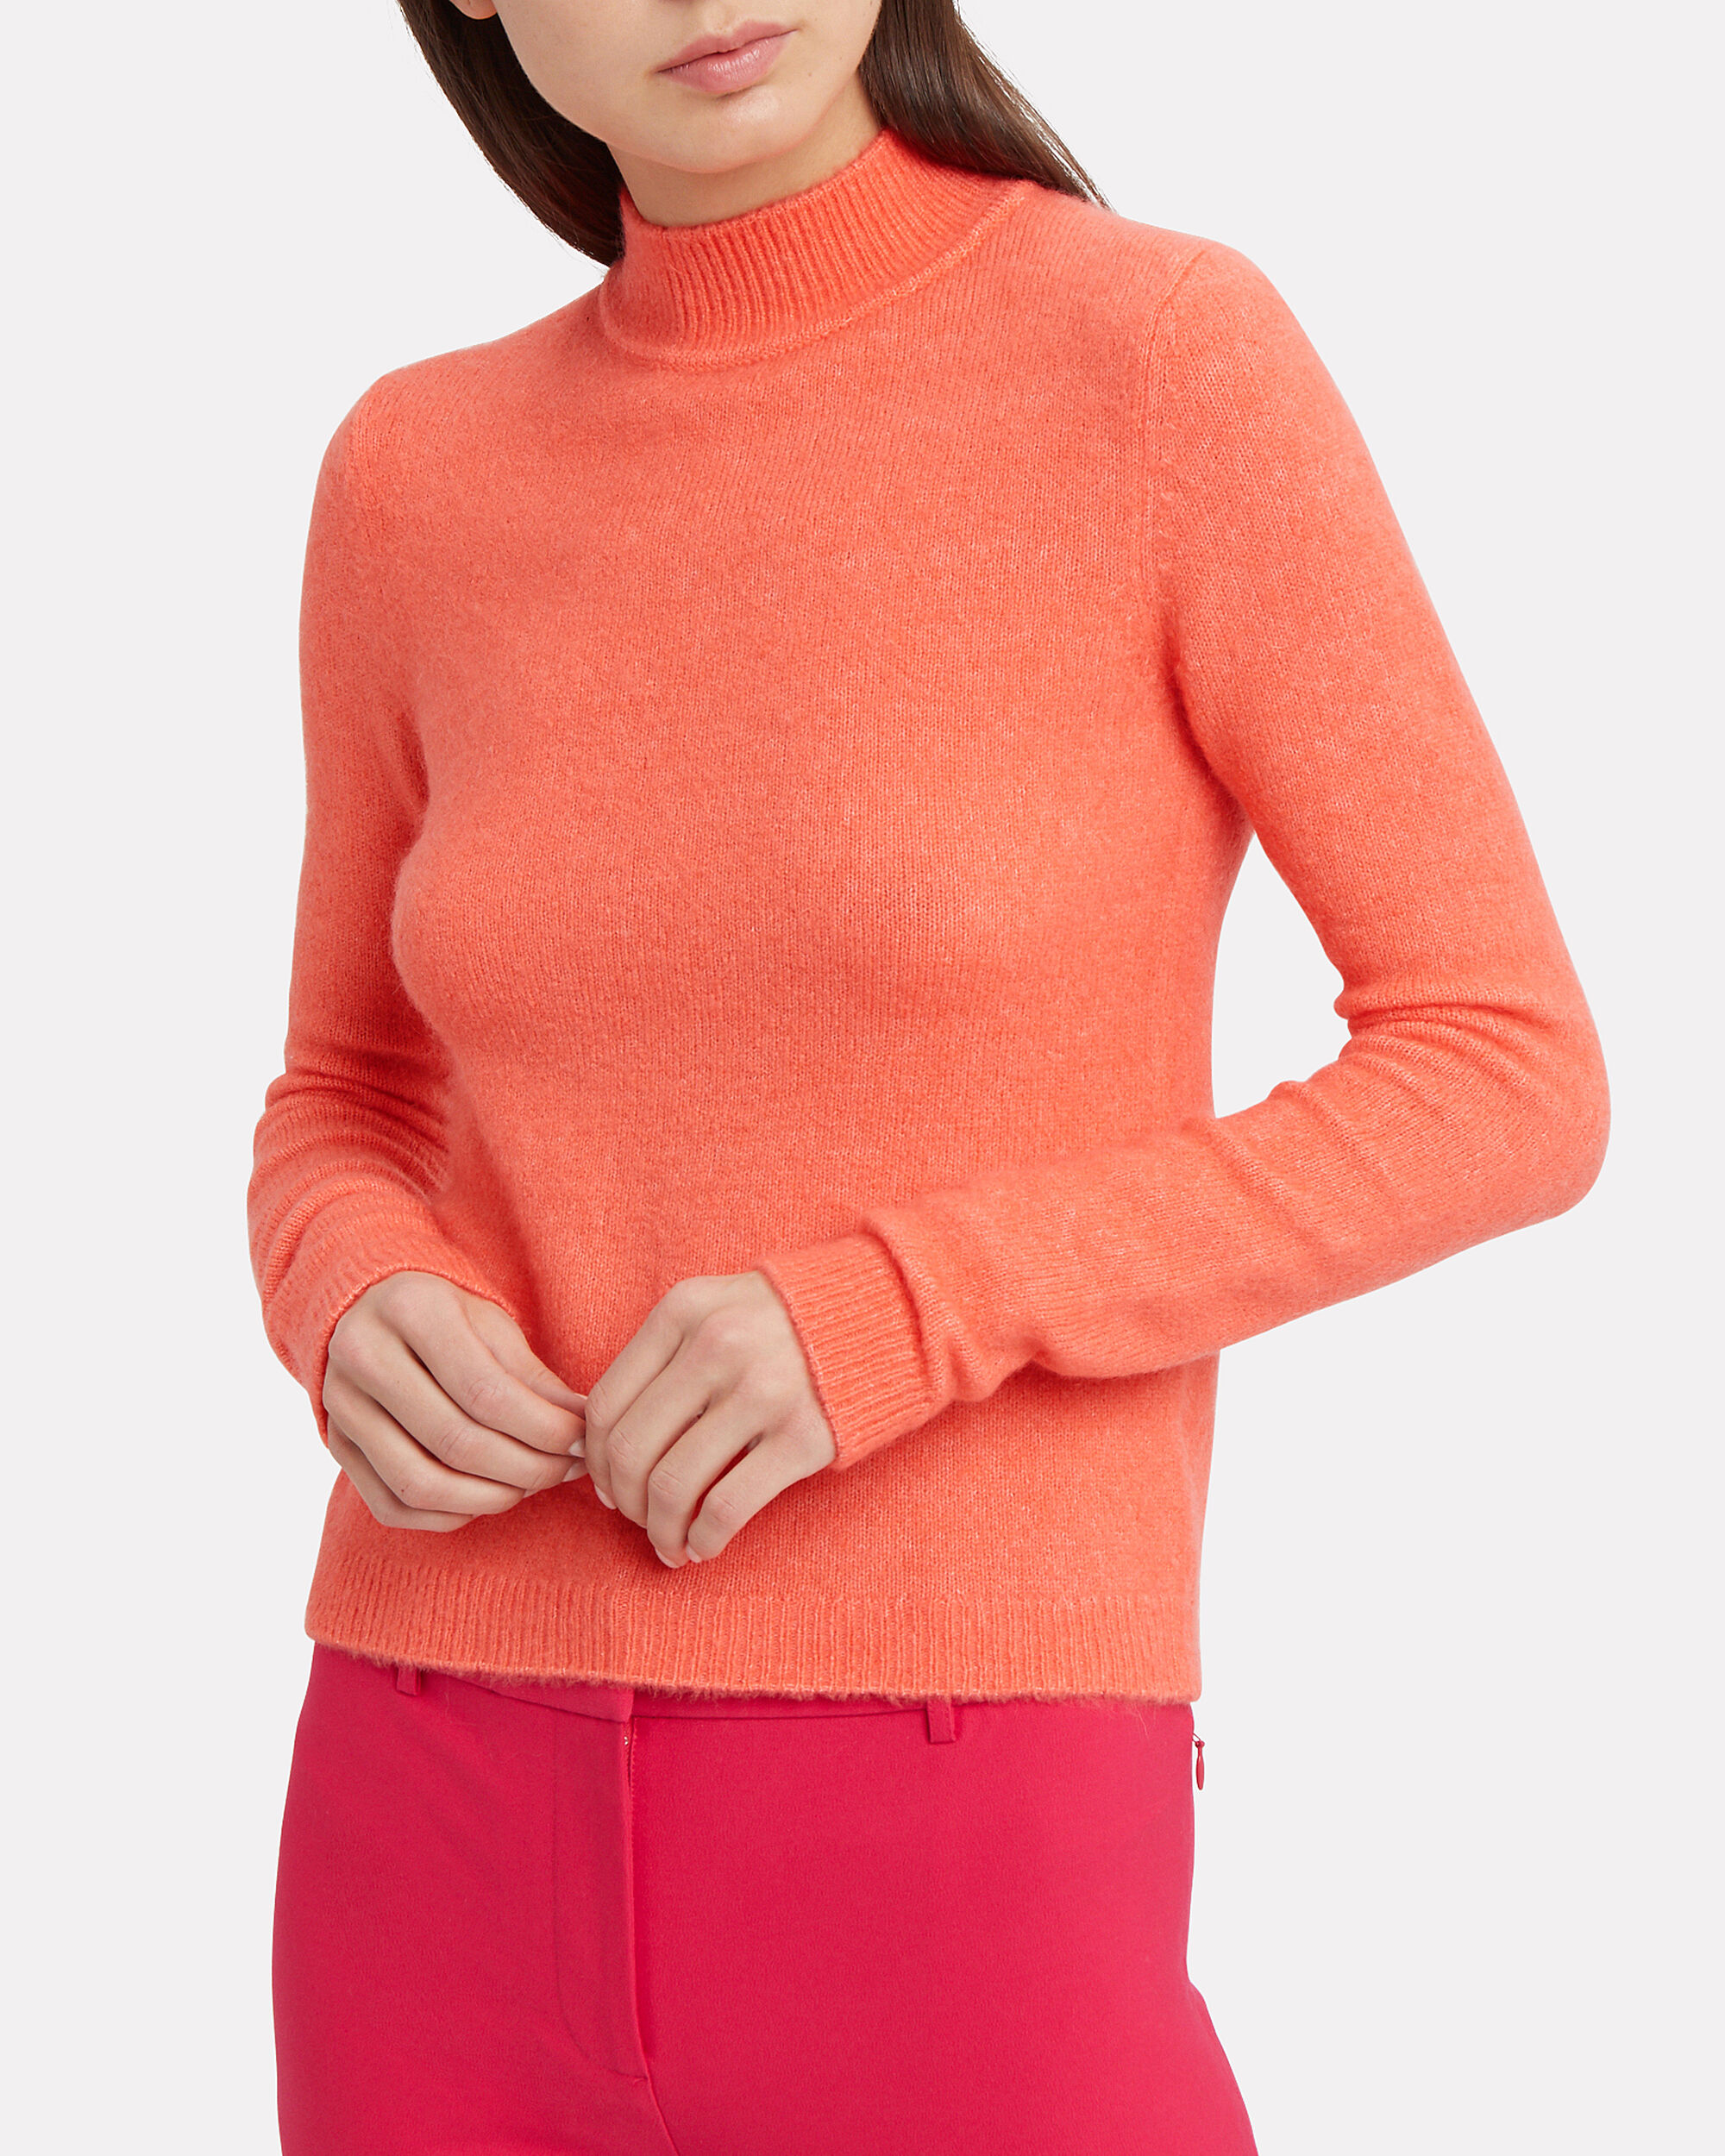 Evie Mock Neck Sweater, BRIGHT CORAL, hi-res